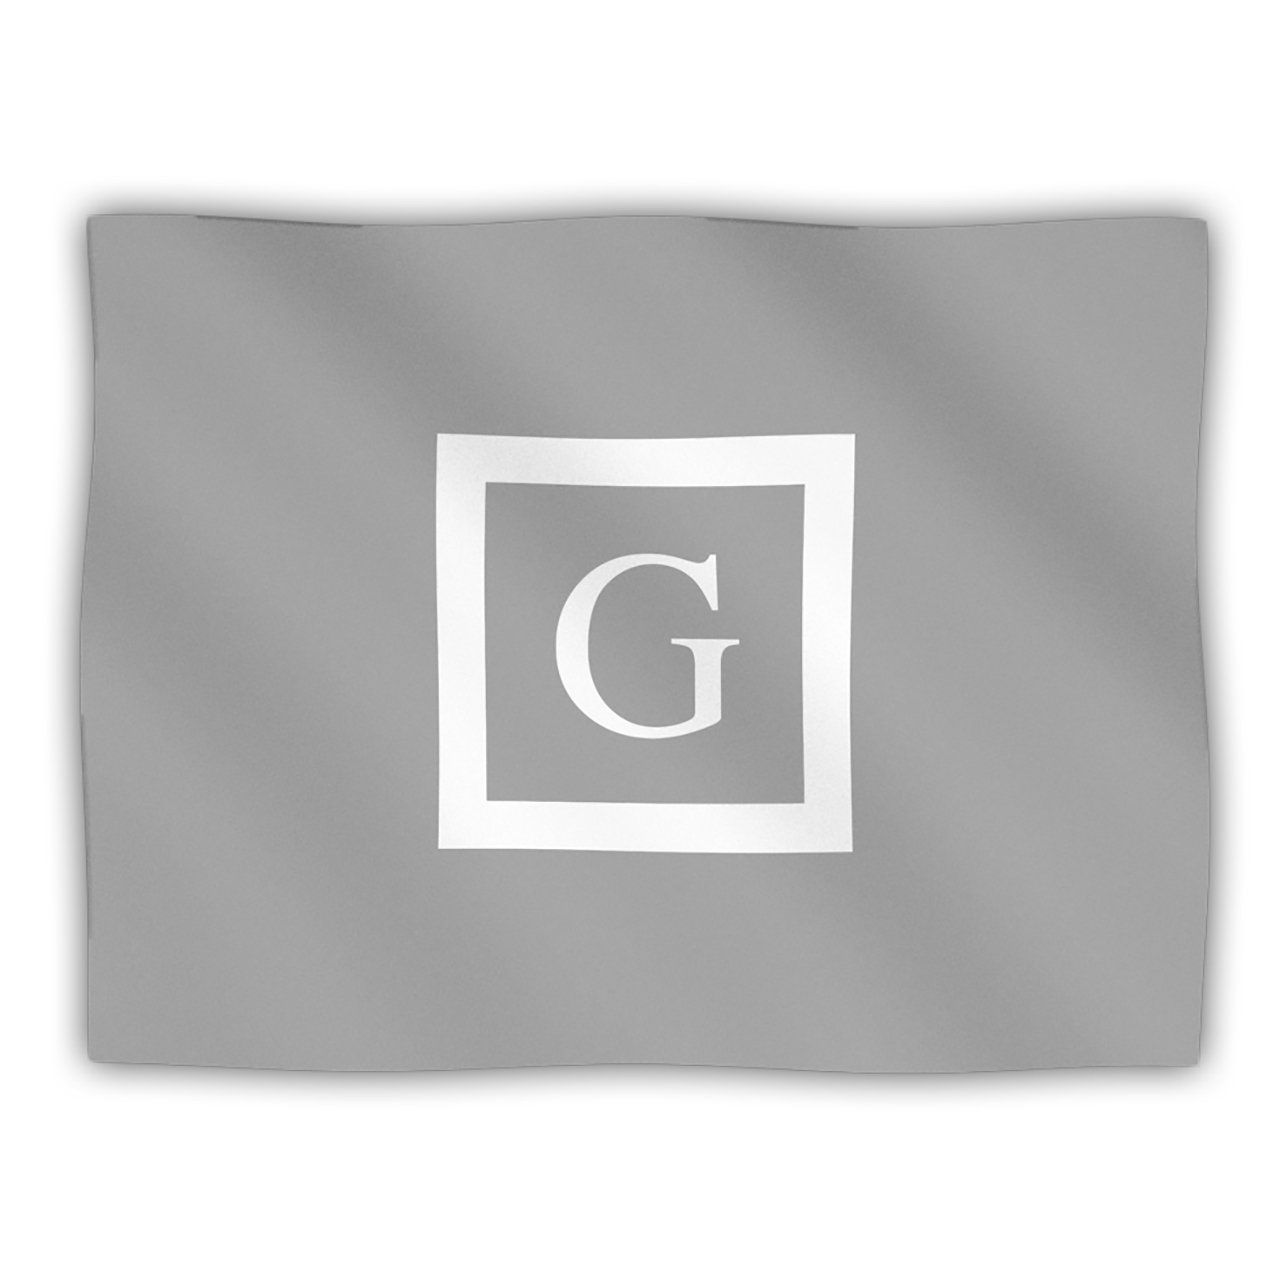 Kess InHouse Kess Original 'Monogram Solid Grey Letter G' Dog Blanket, 40 by 30-Inch